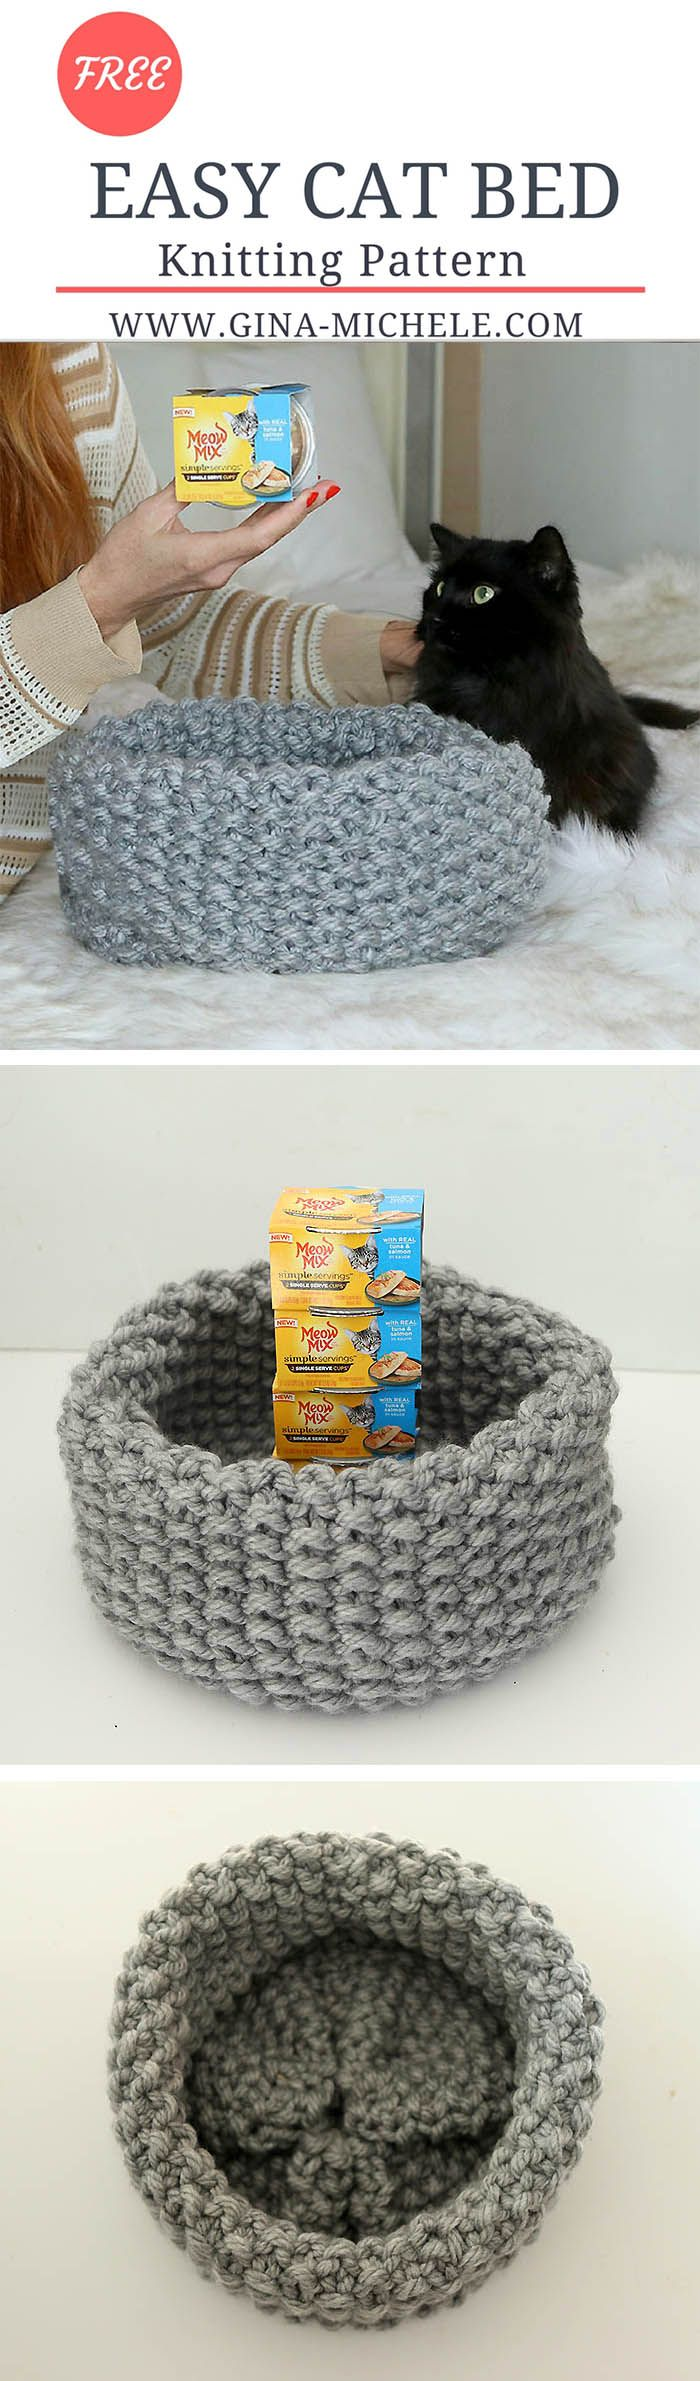 FREE knitting pattern for this Easy Cat Bed. It's knit on